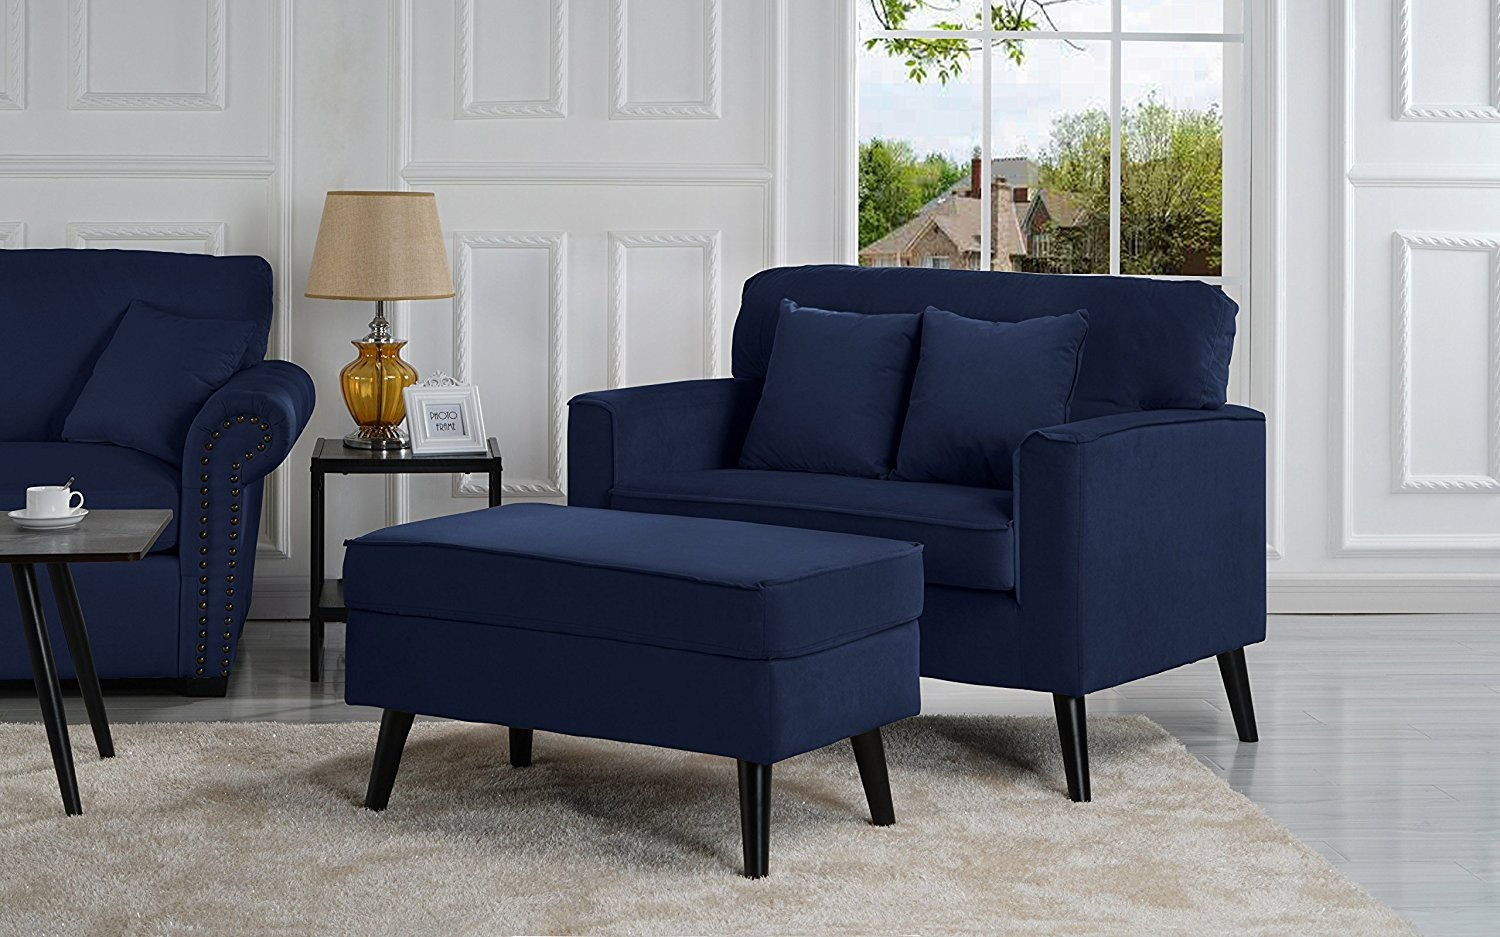 Details about Mid-Century Modern Living Room Large Accent Chair with  Footrest / Storage Blue